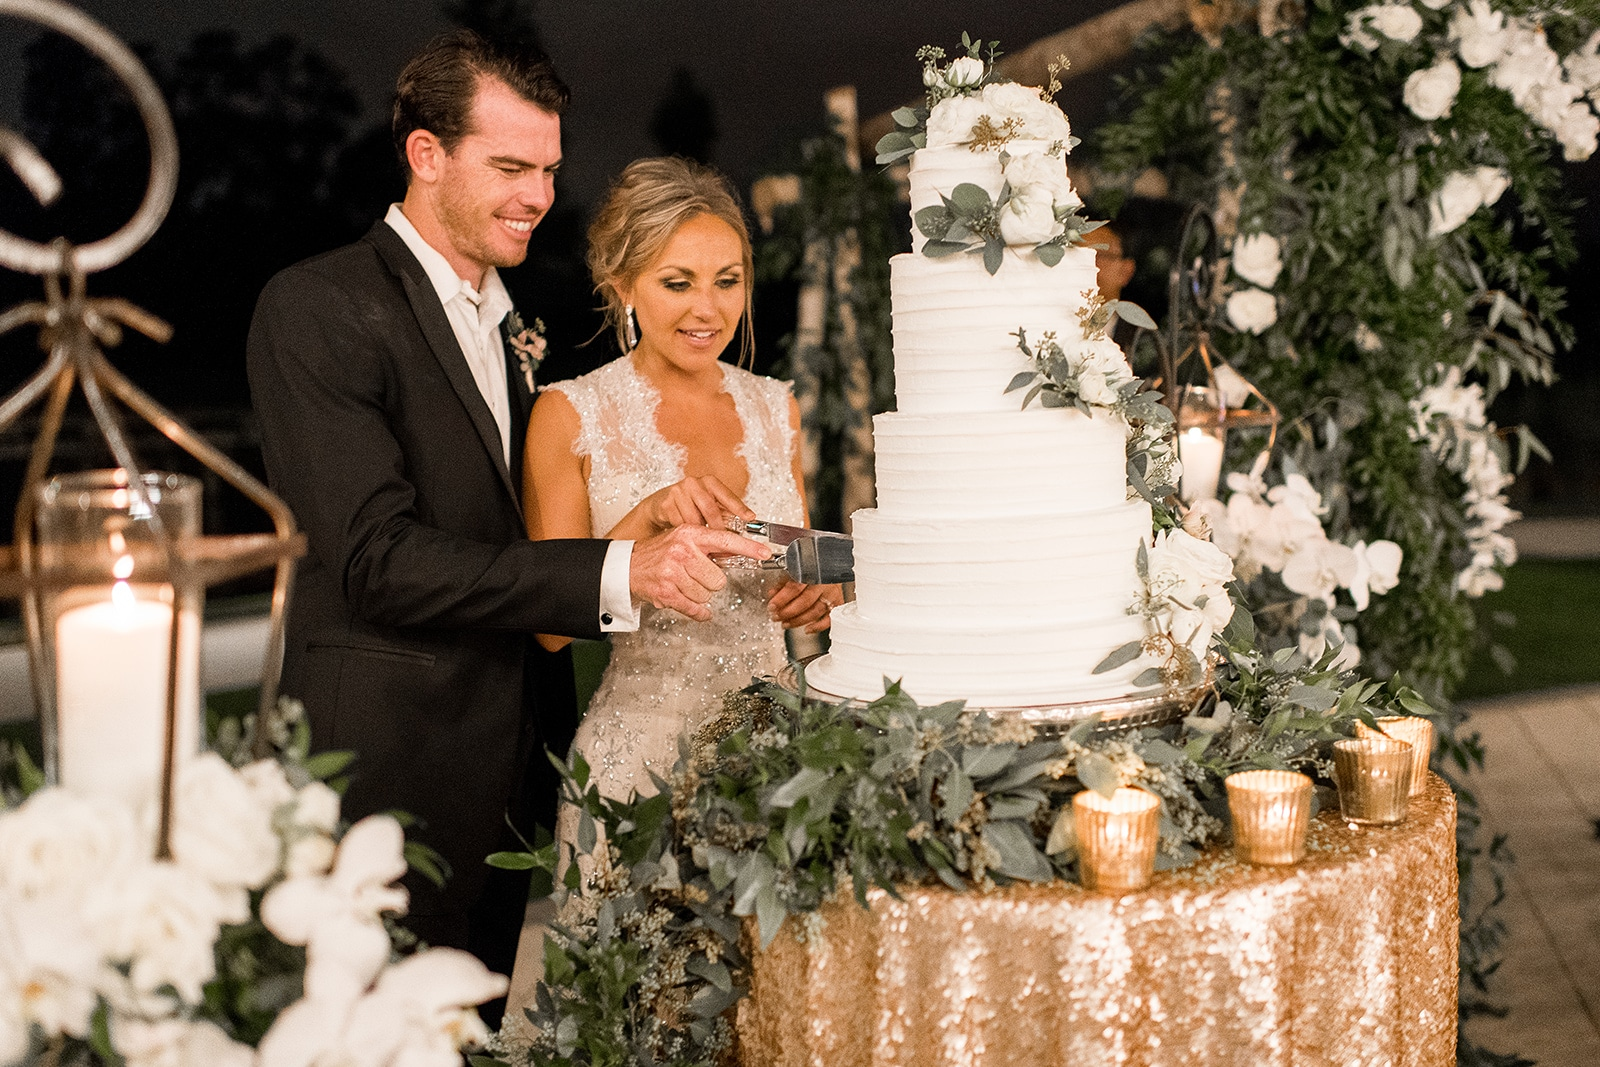 Greenery Productions - couple cutting into wedding cake decorated with white flowers and eucalyptus